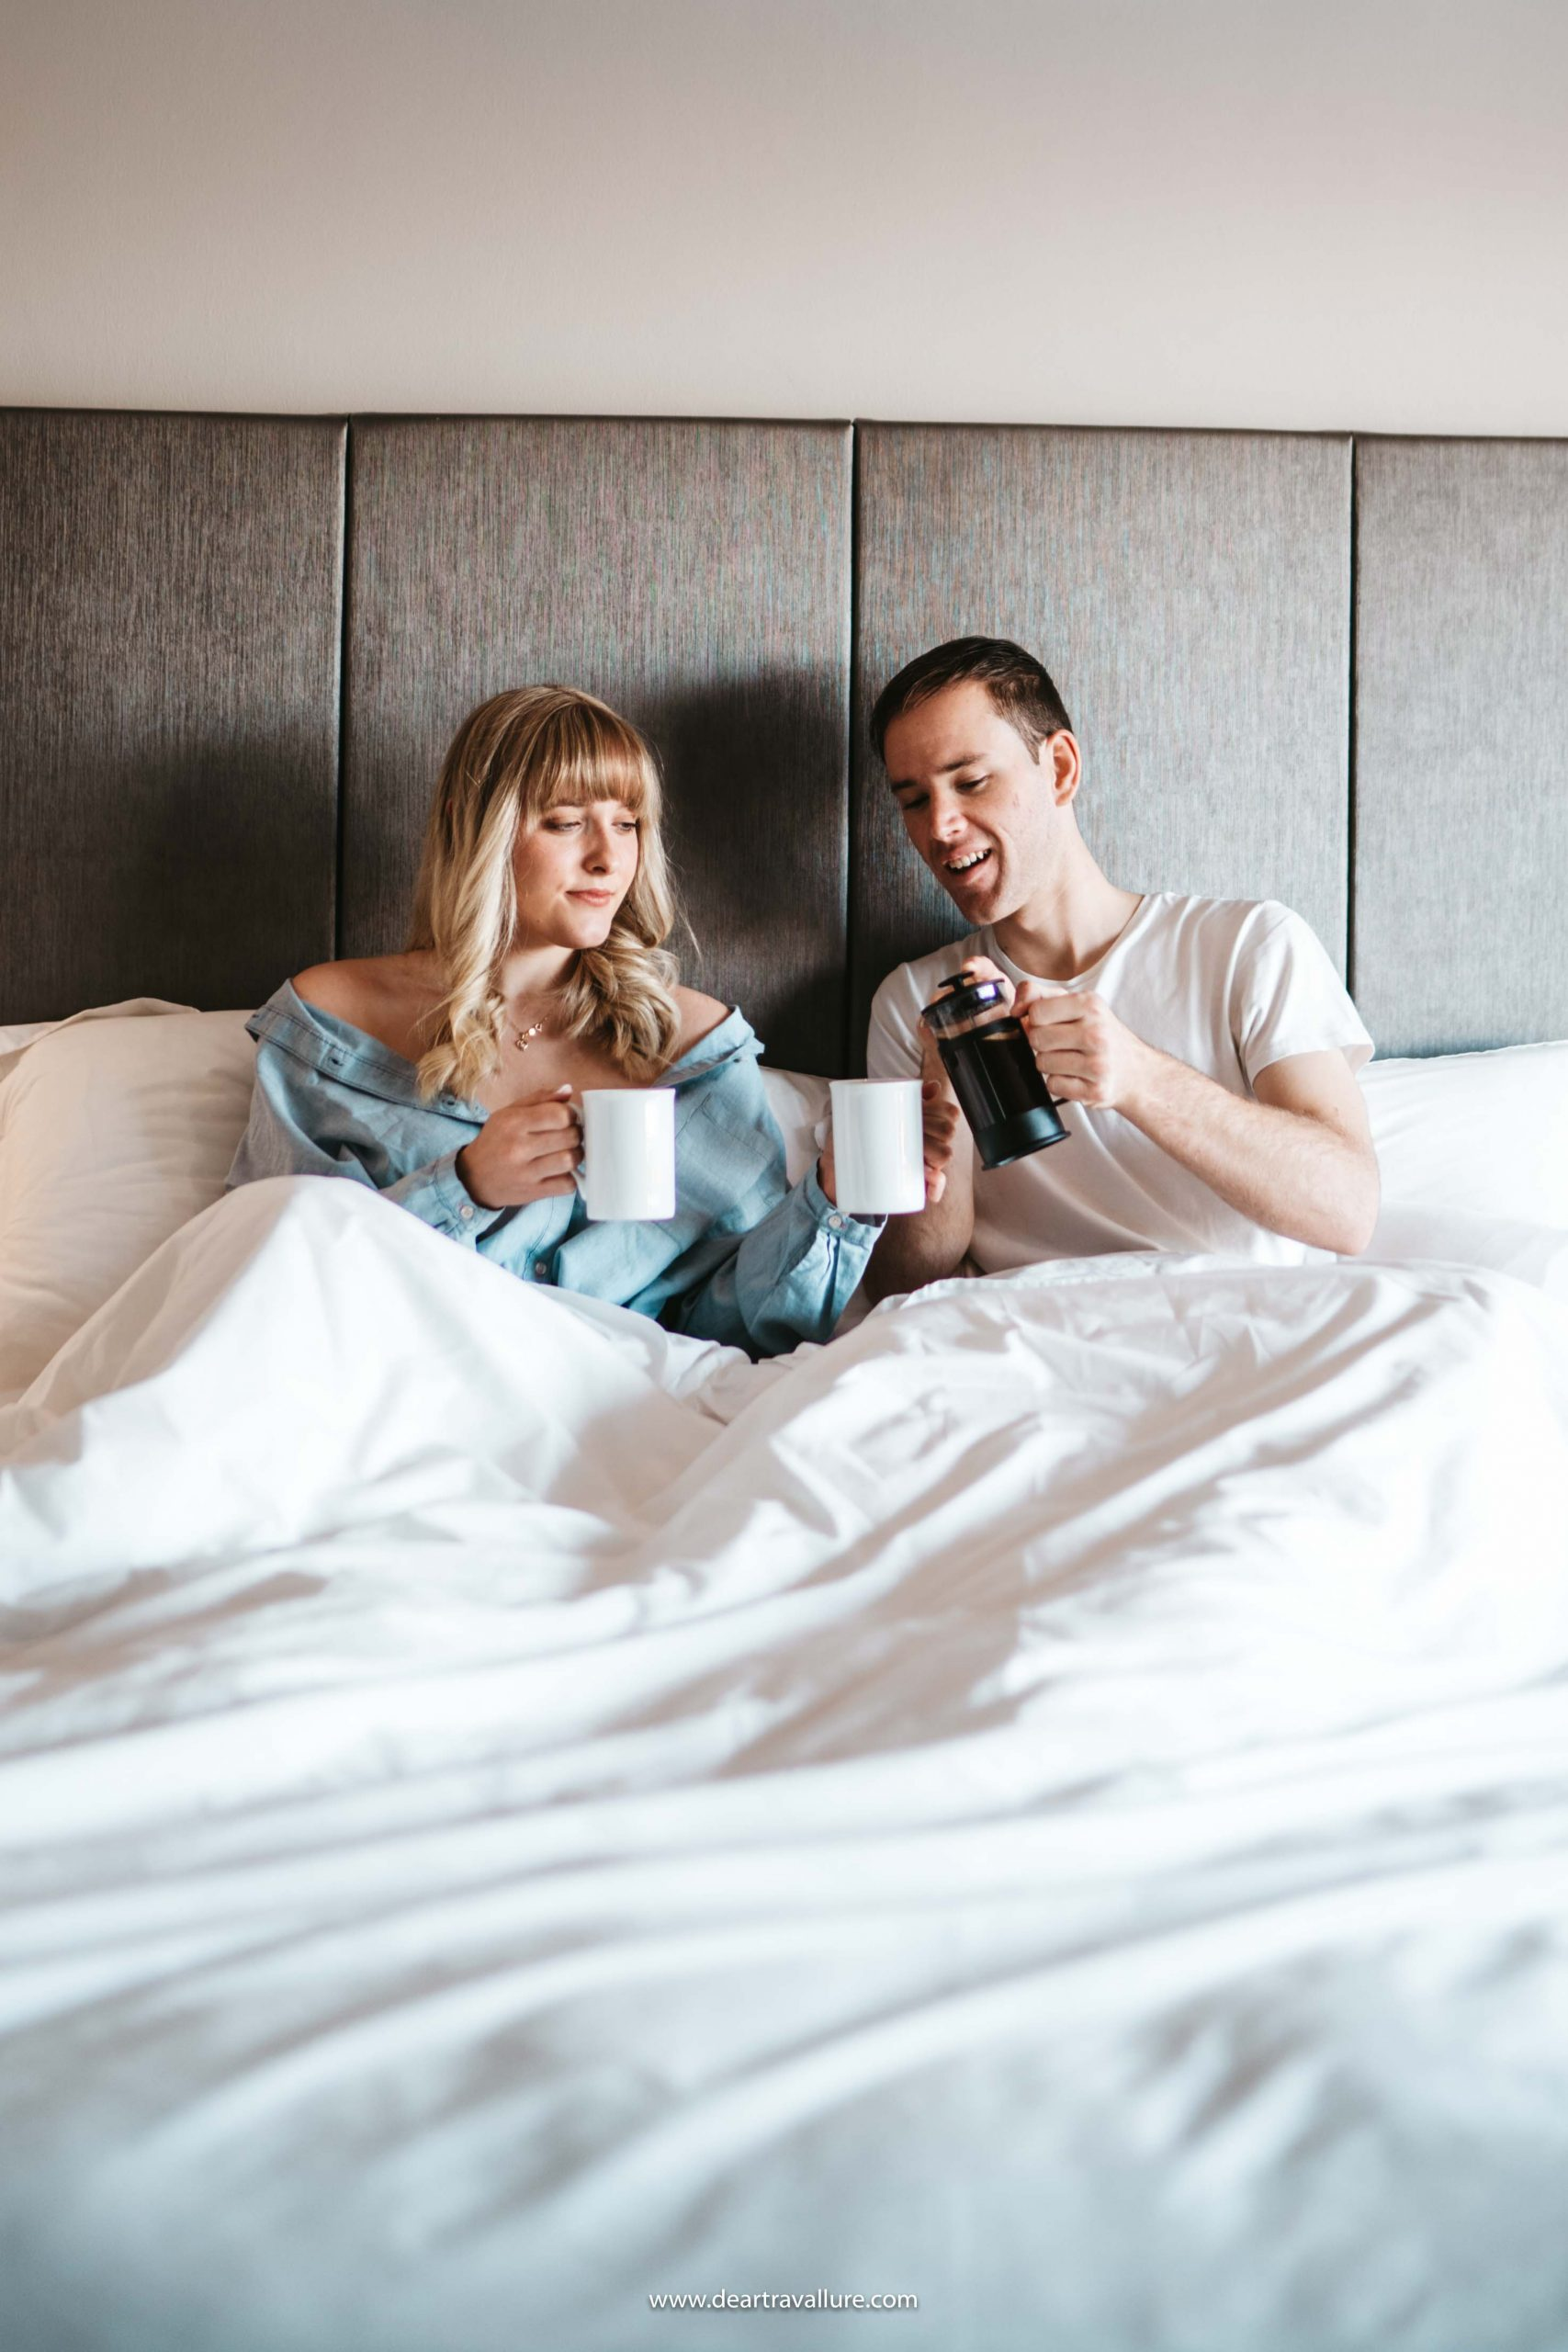 Byron and Tammy having coffee in bed